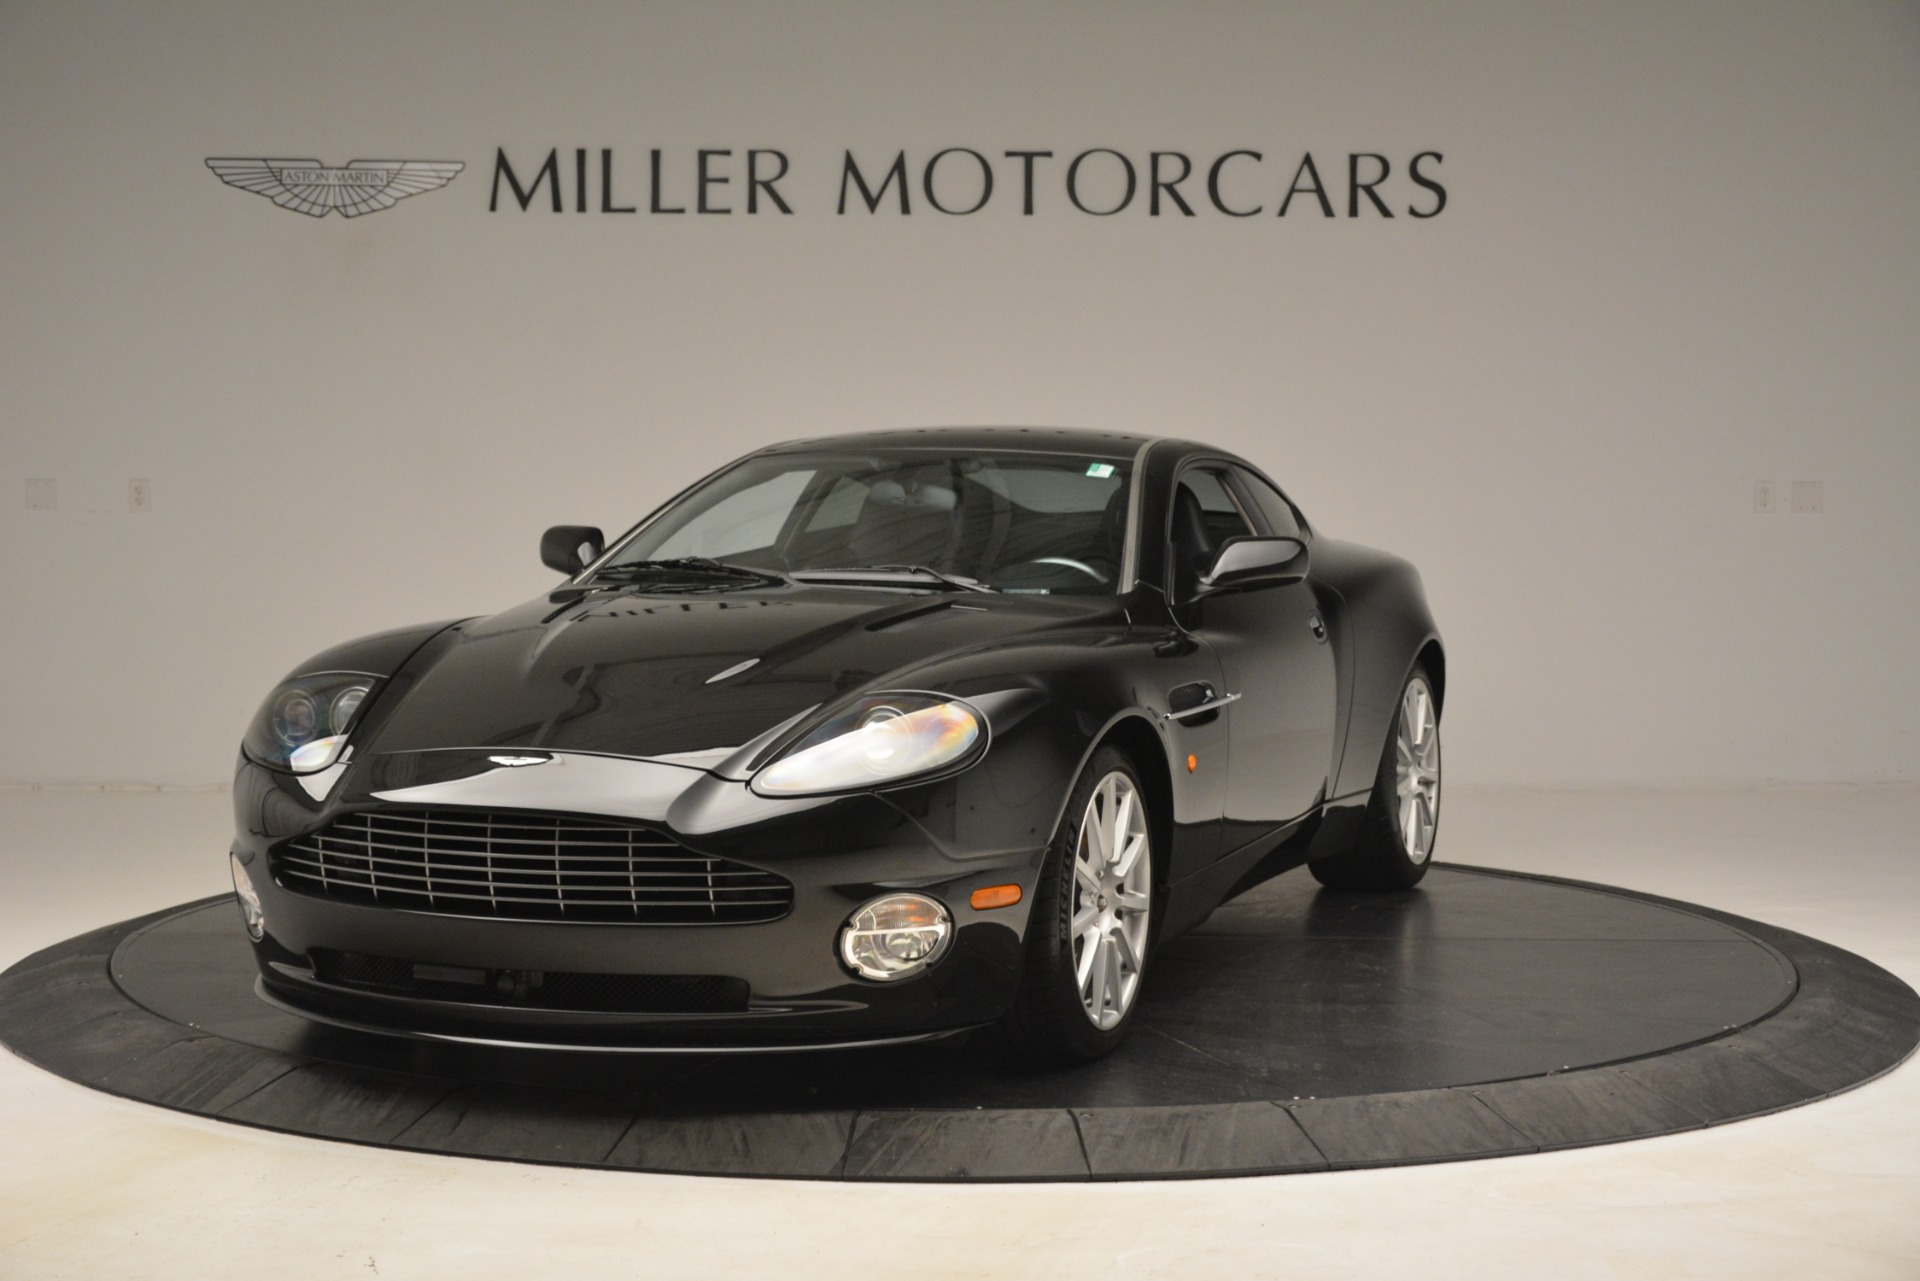 Used 2005 Aston Martin V12 Vanquish S For Sale In Greenwich, CT 3218_p2